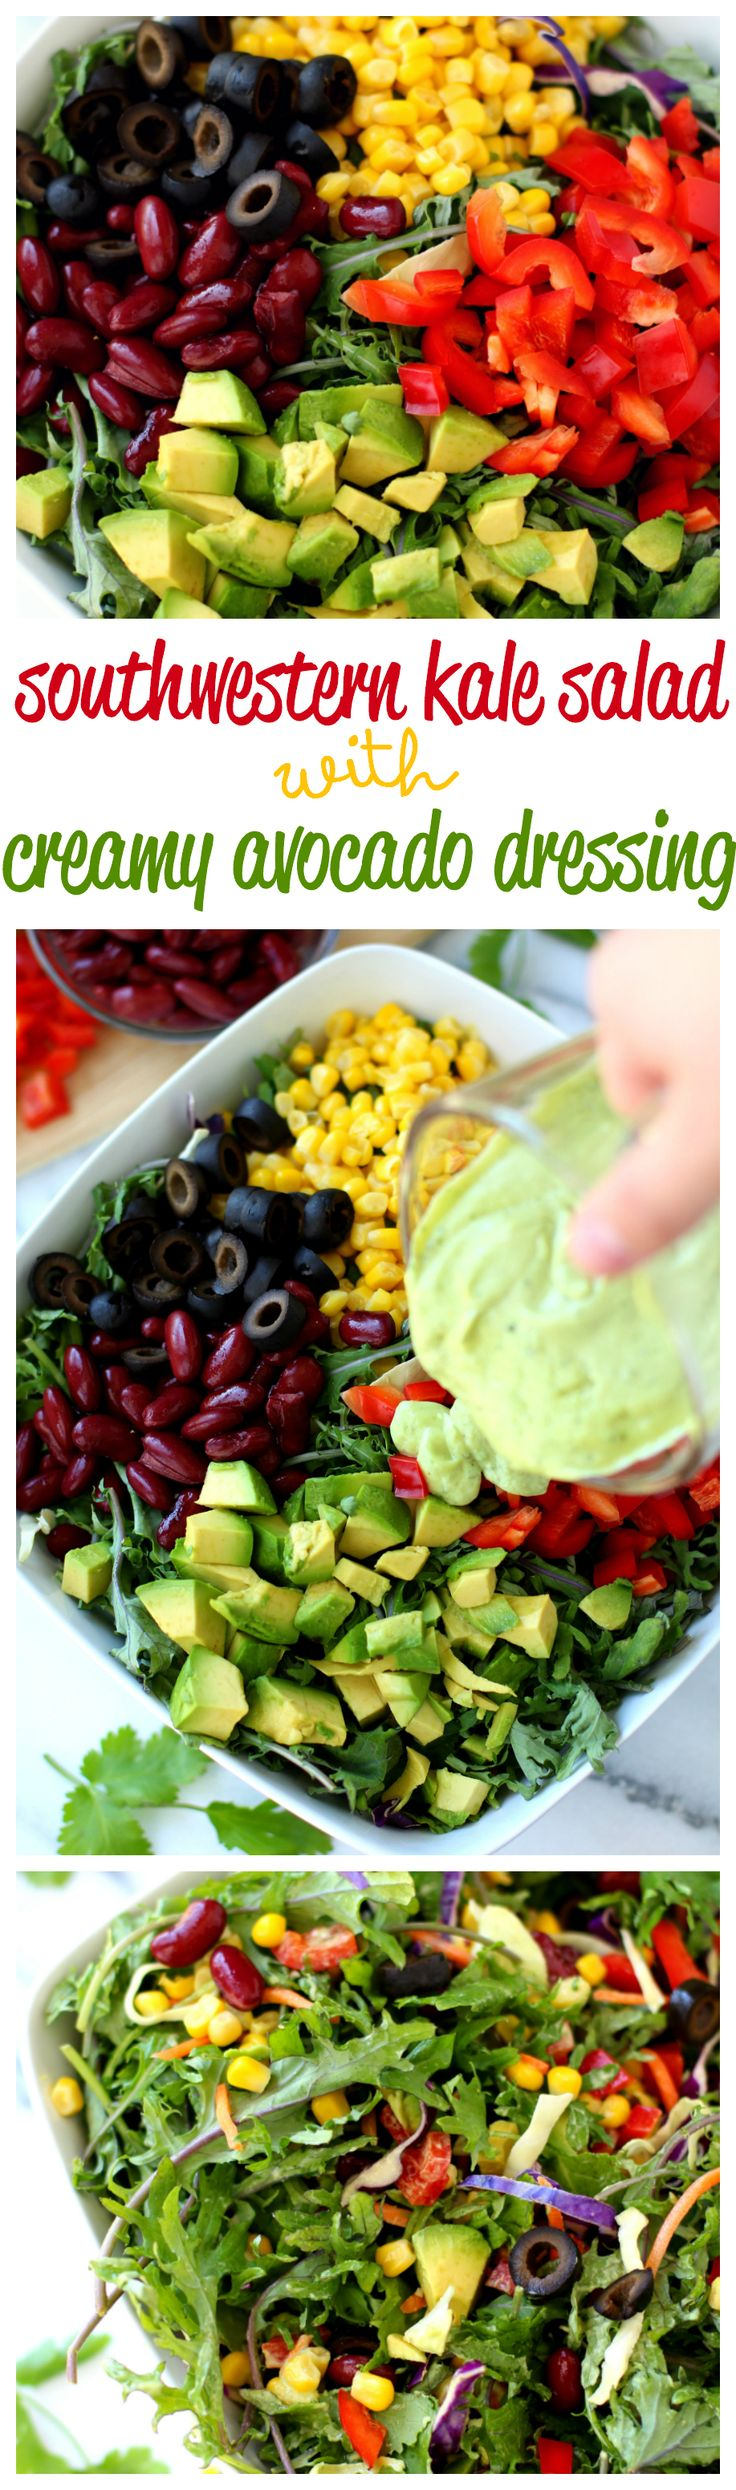 Southwestern Kale Salad with Creamy Avocado Dressing – healthy, crunchy and loaded with delicious flavor. Totally, an avocado-lovers DREAM!